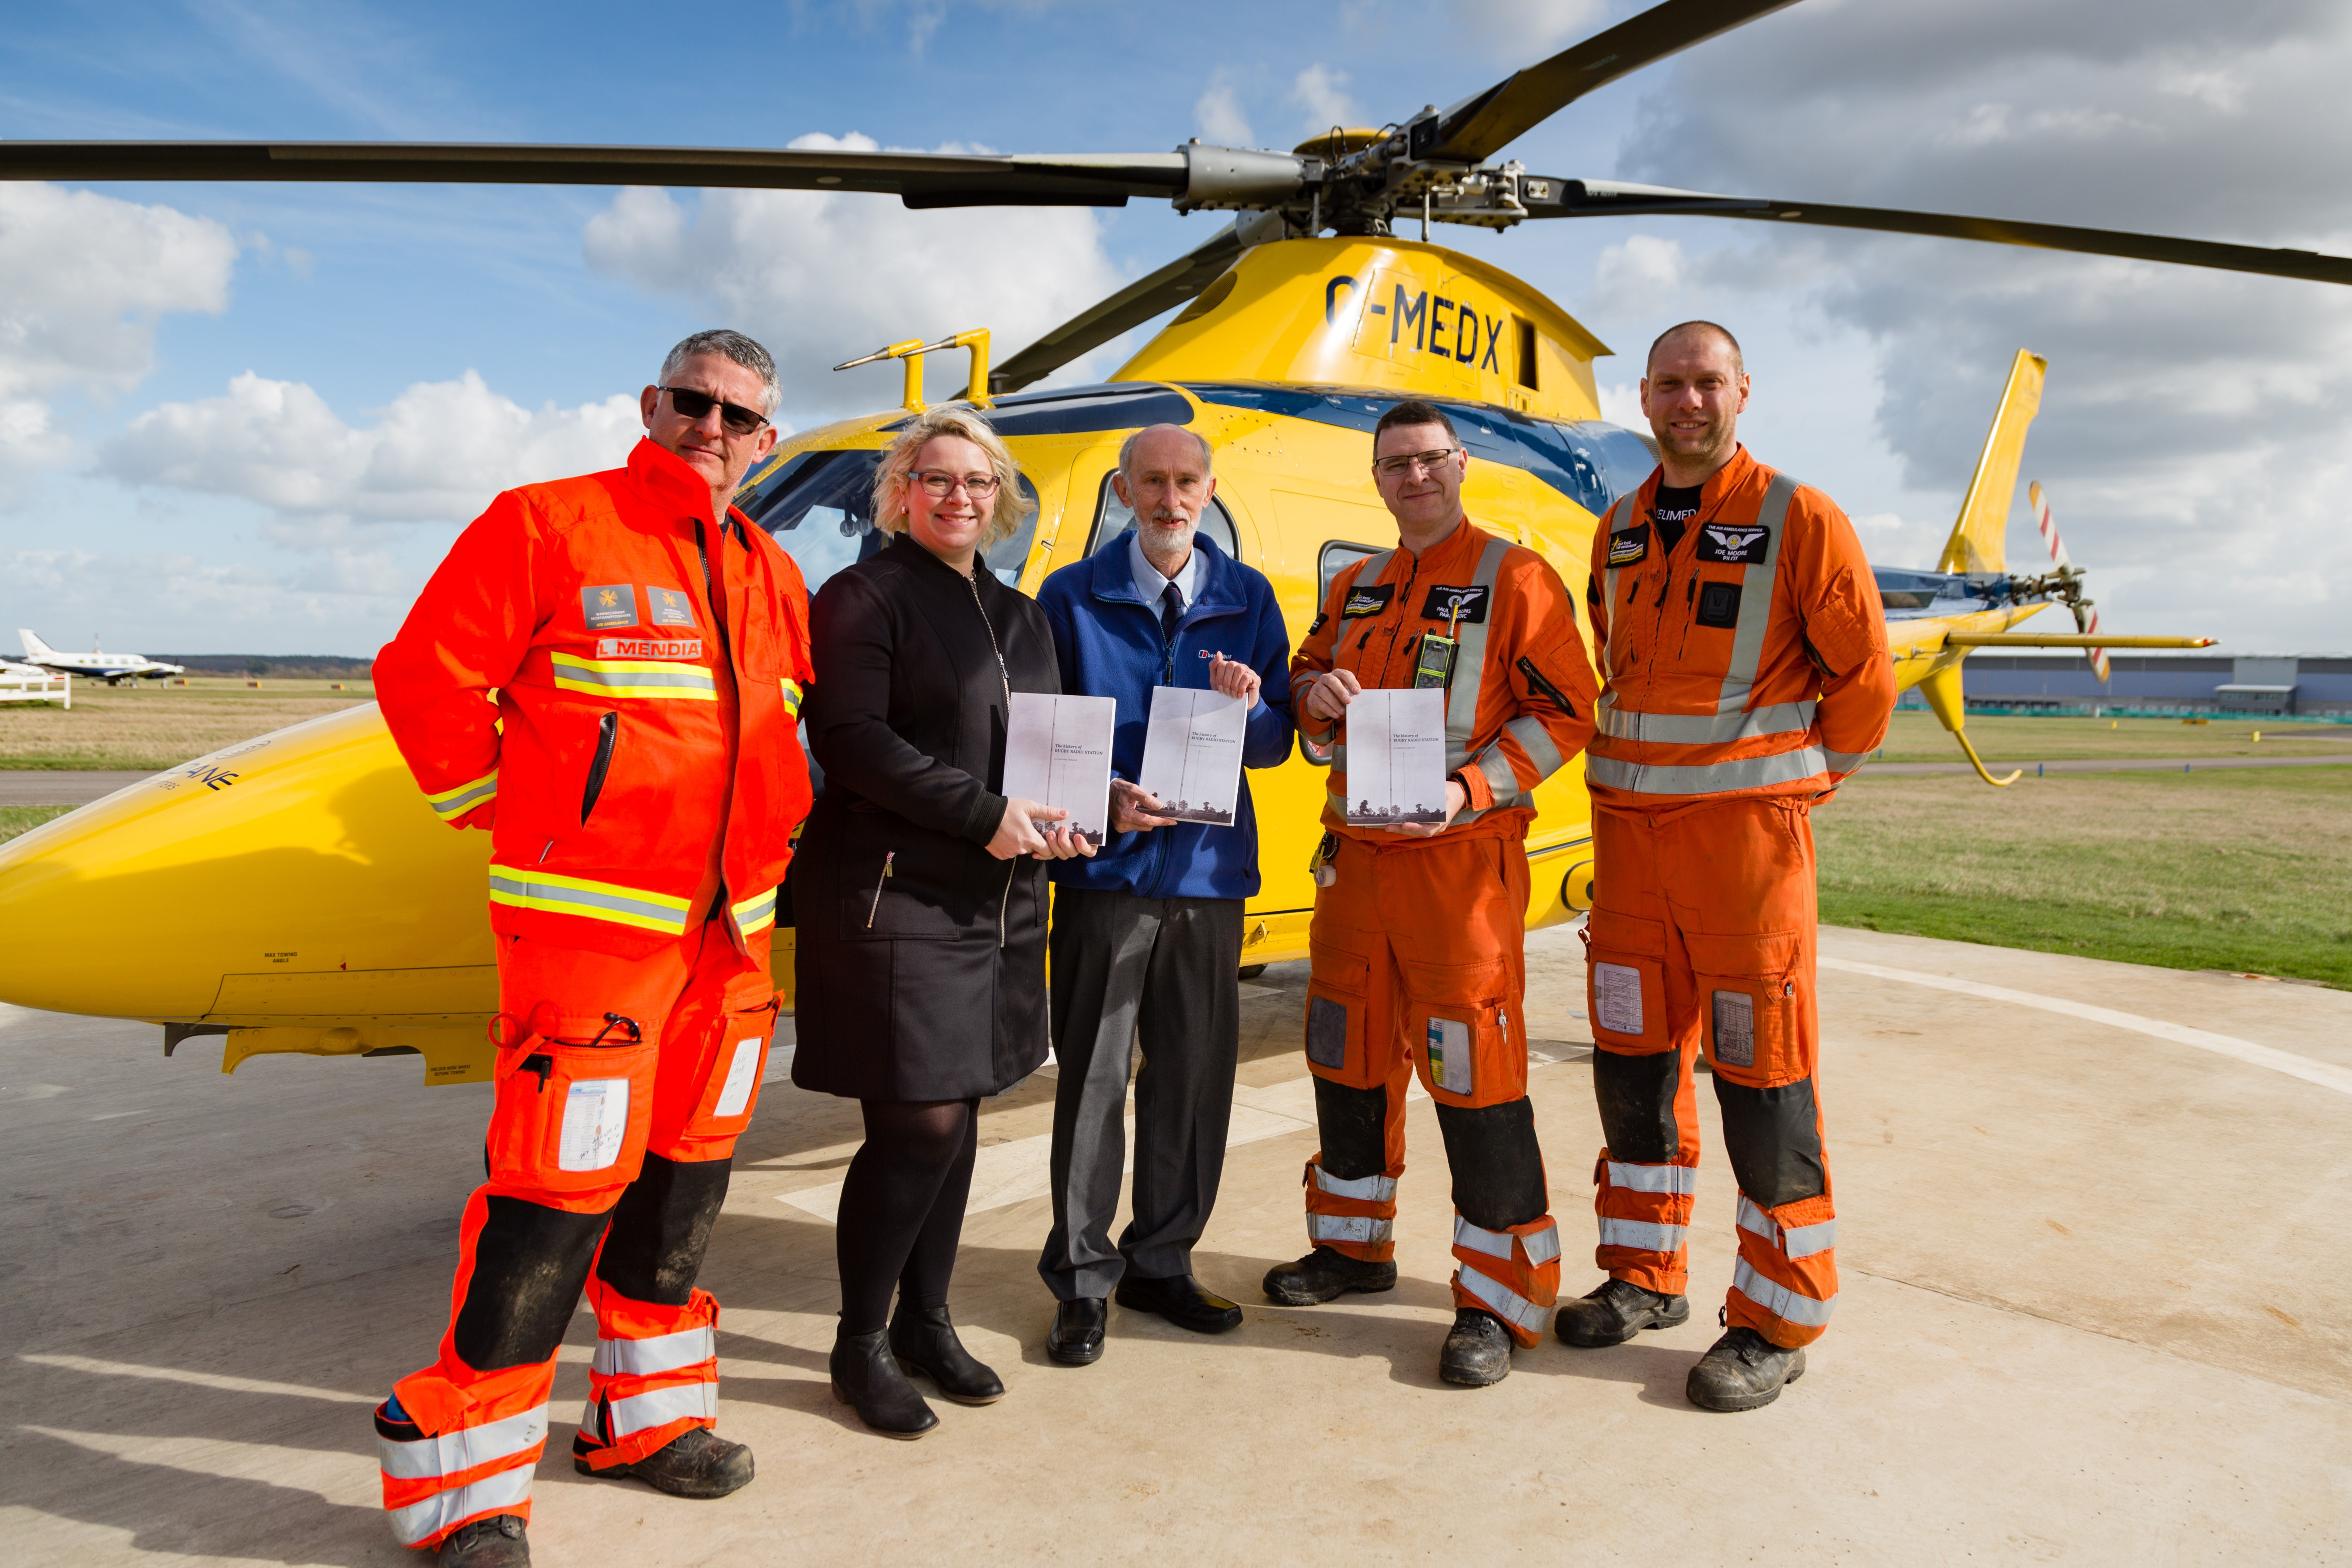 Book sales soar in support of Air Ambulance as the past gives life to the present